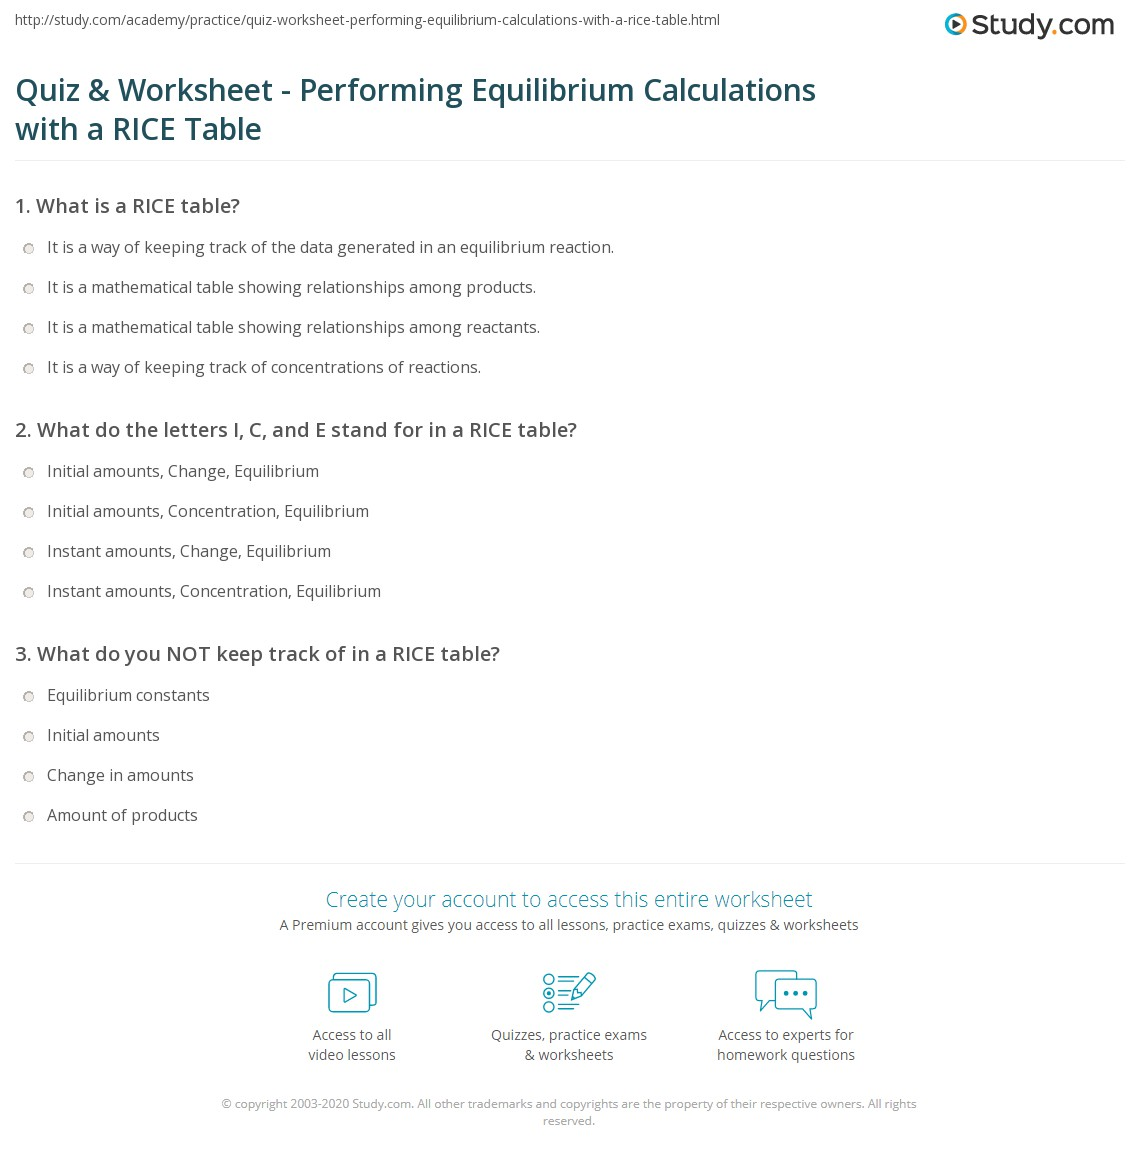 Quiz & Worksheet - Performing Equilibrium Calculations with a RICE ...